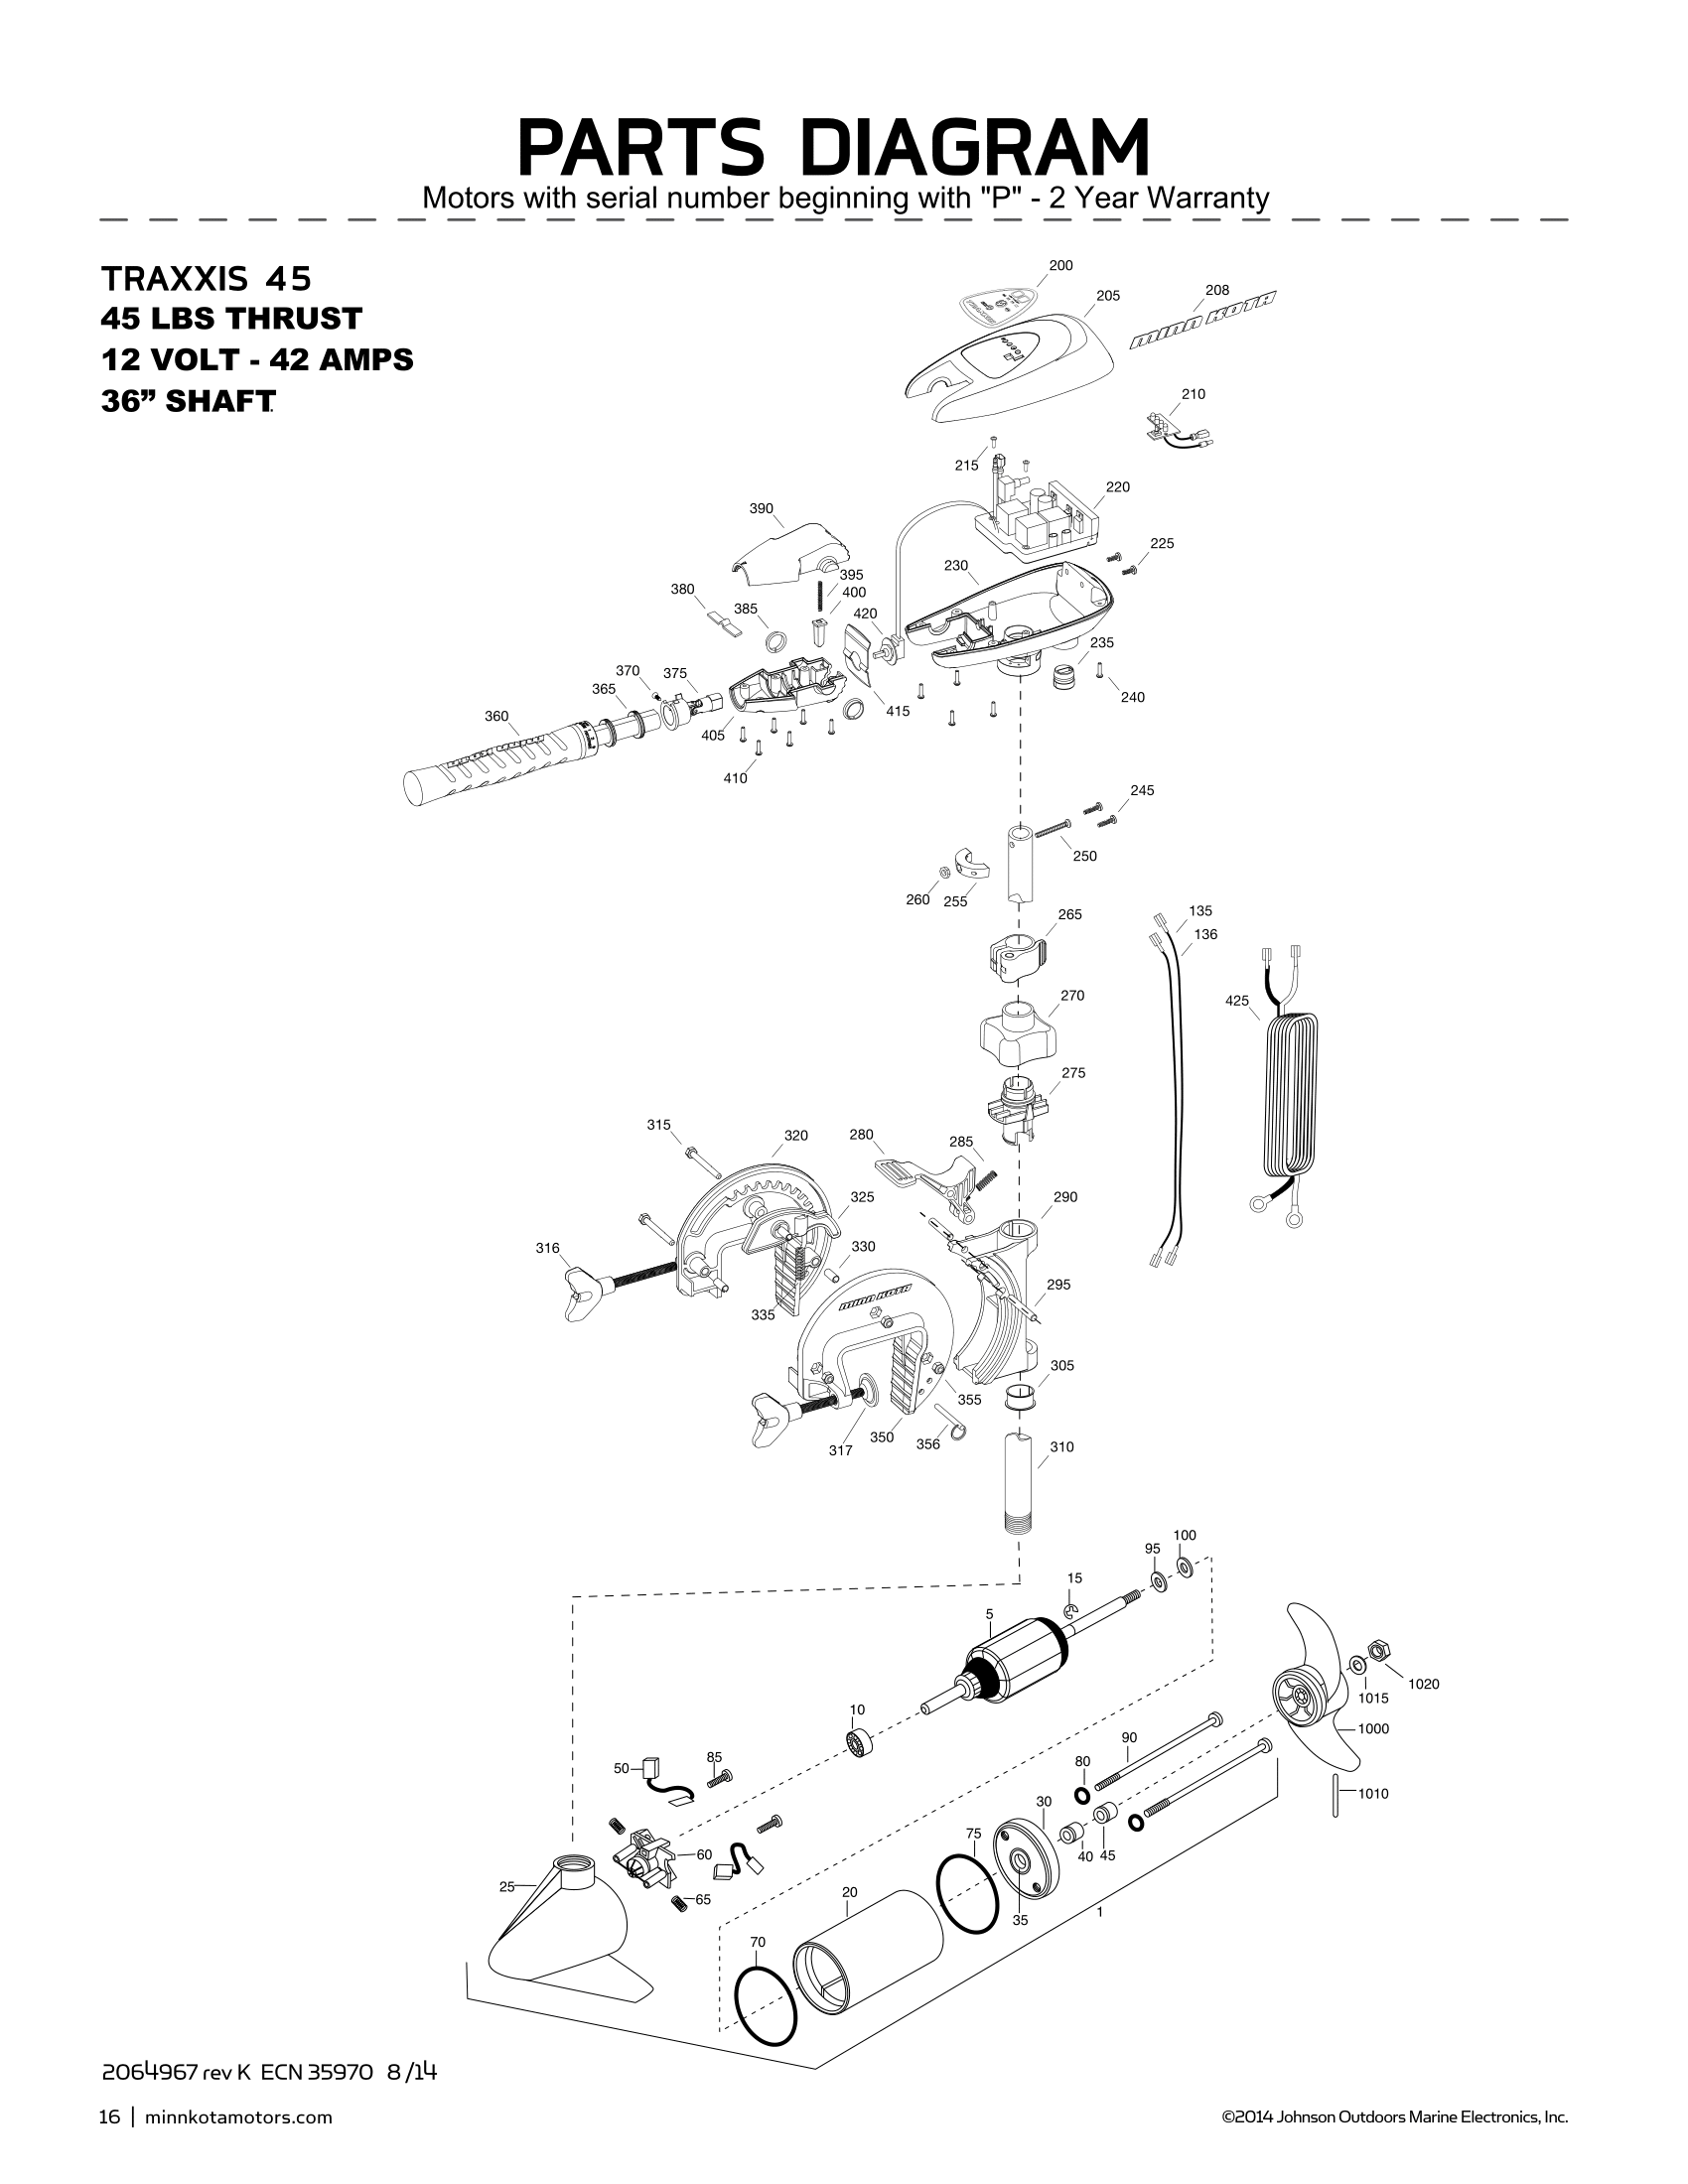 2015-mk-traxxis45-1.png